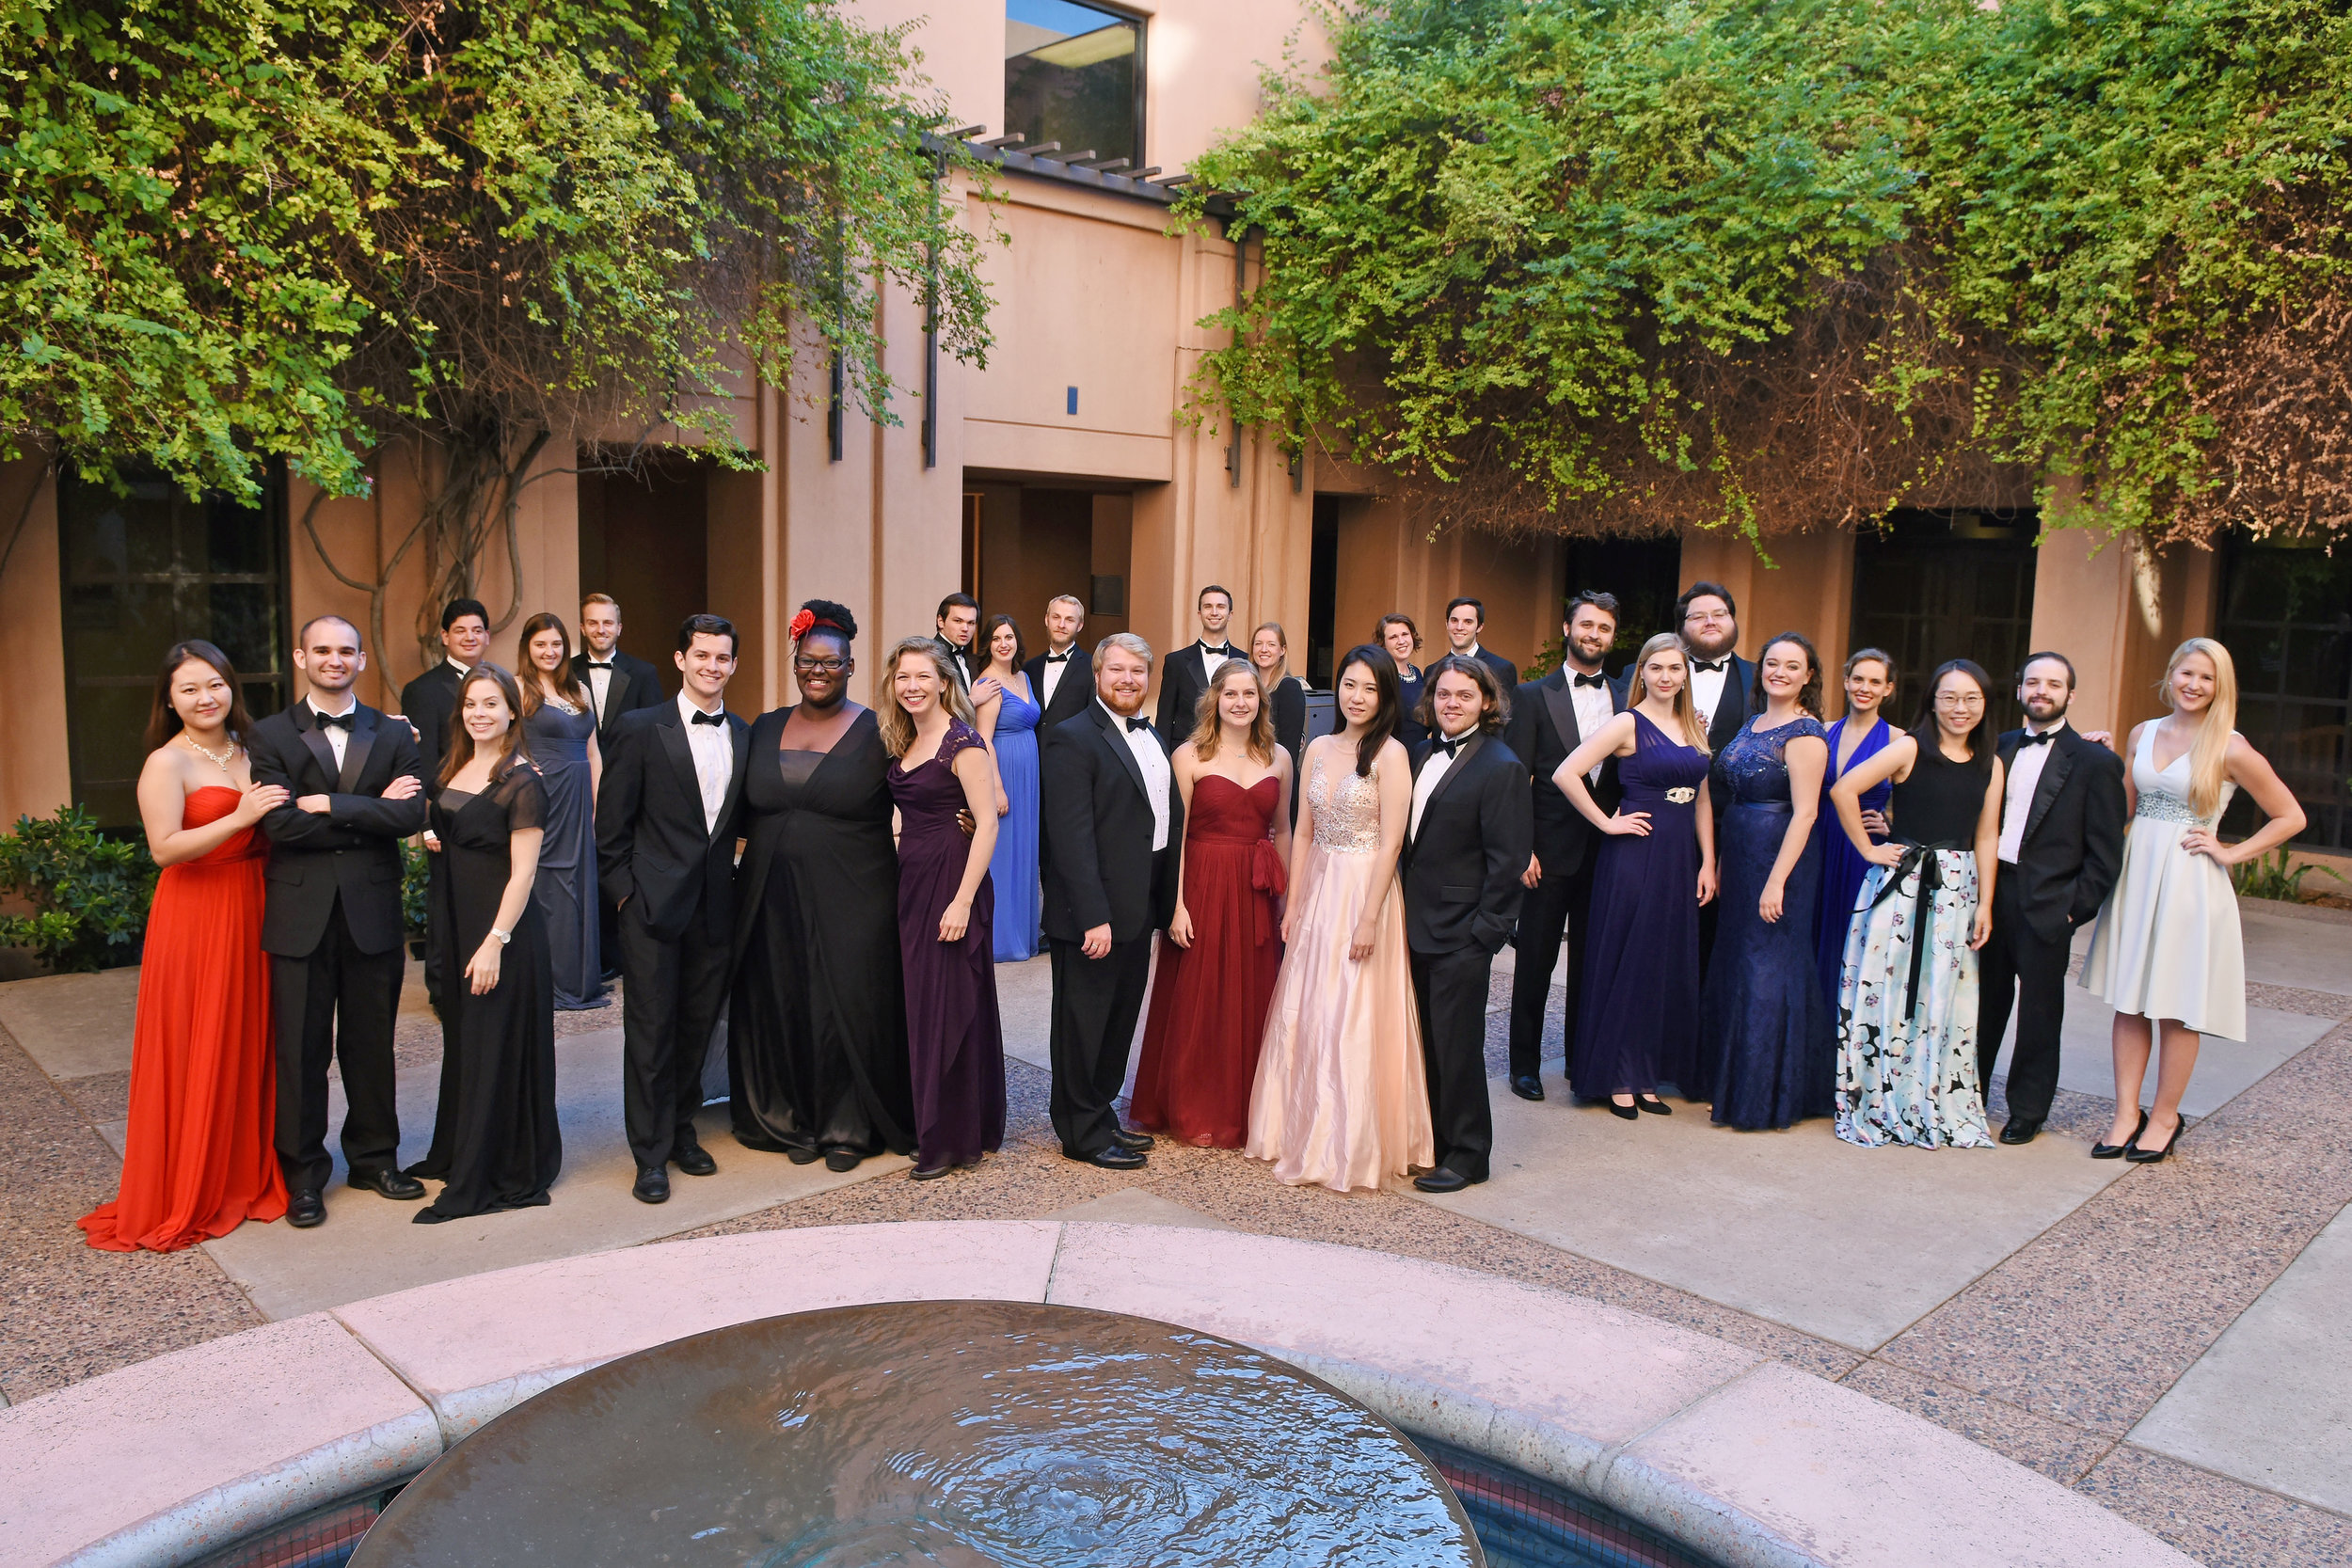 A recent photo of the ASU Chamber Singers. many of these musicians are now members of Euphony. We'll replace this with a photo of the actual group once we get together!